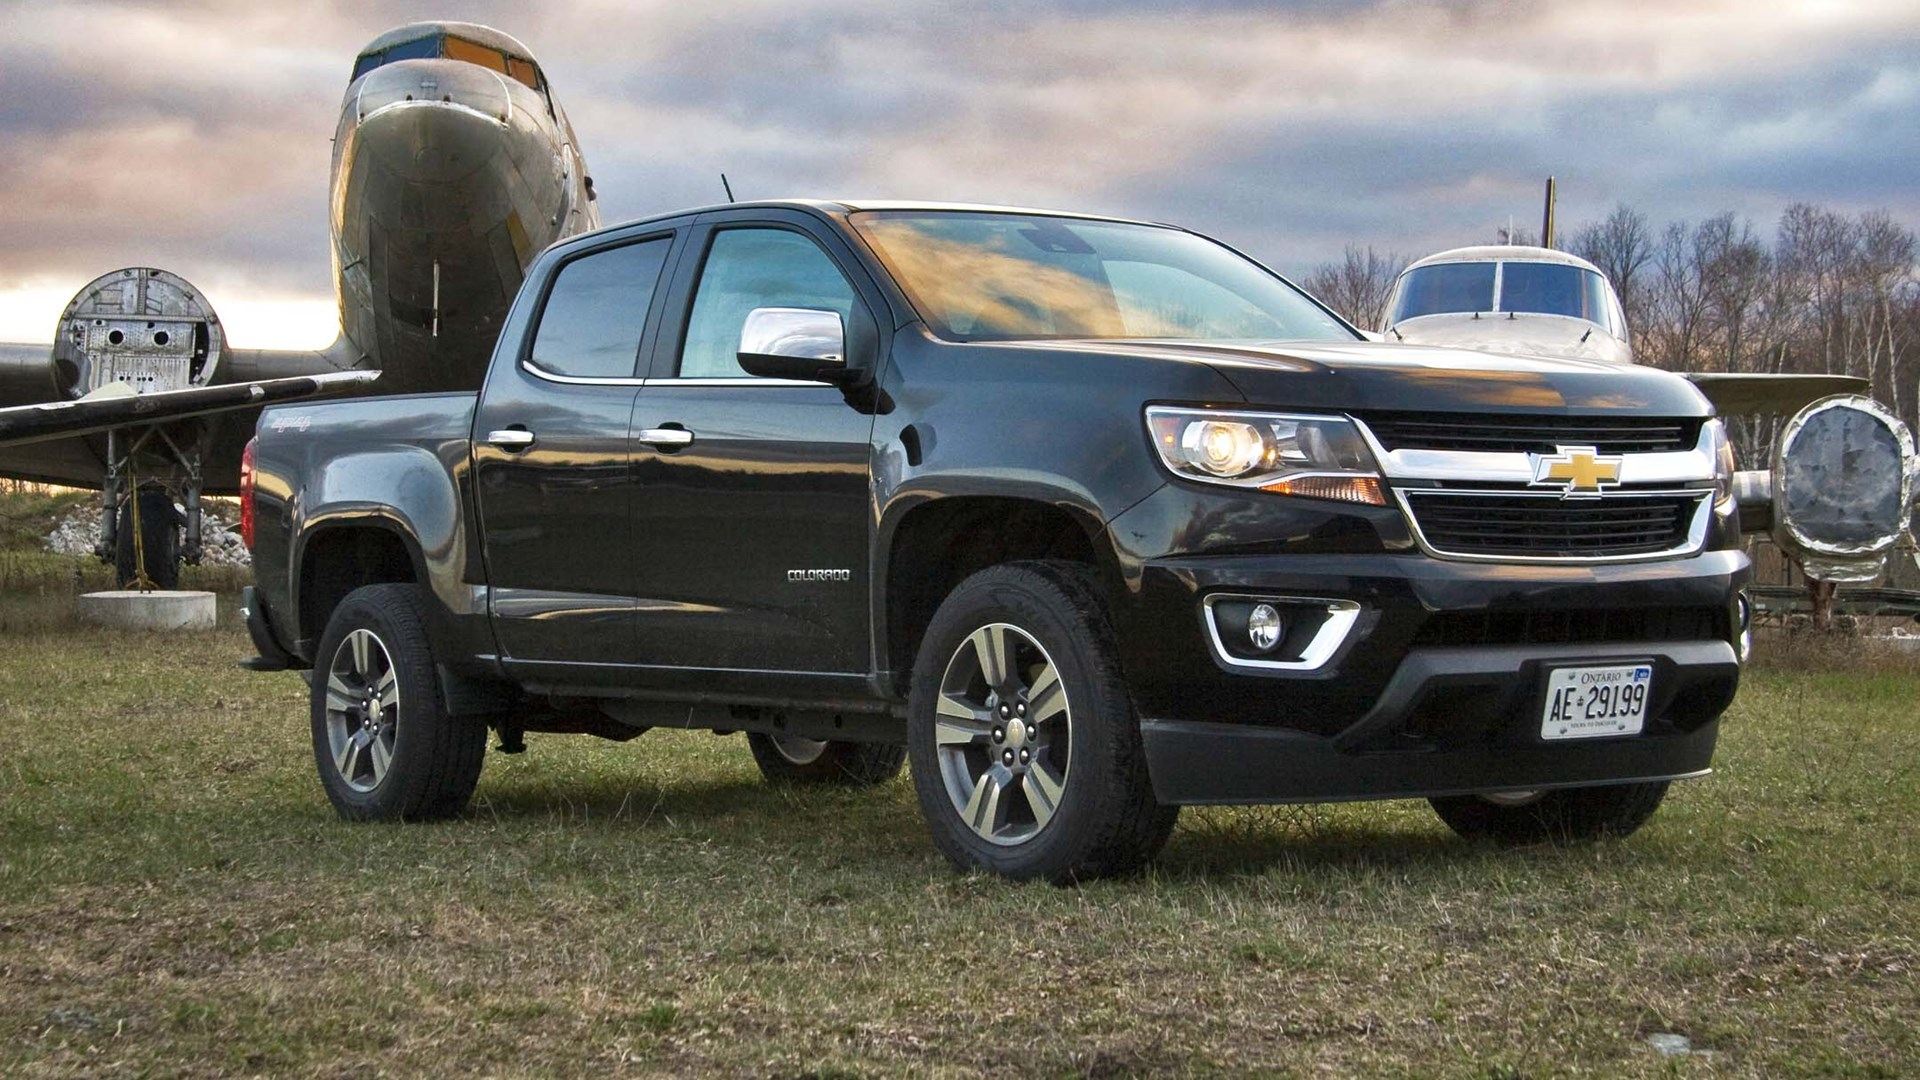 2017 Chevrolet Colorado V6 Lt 4Wd Test Drive Can A 2021 Chevy Colorado Be Flat Towed